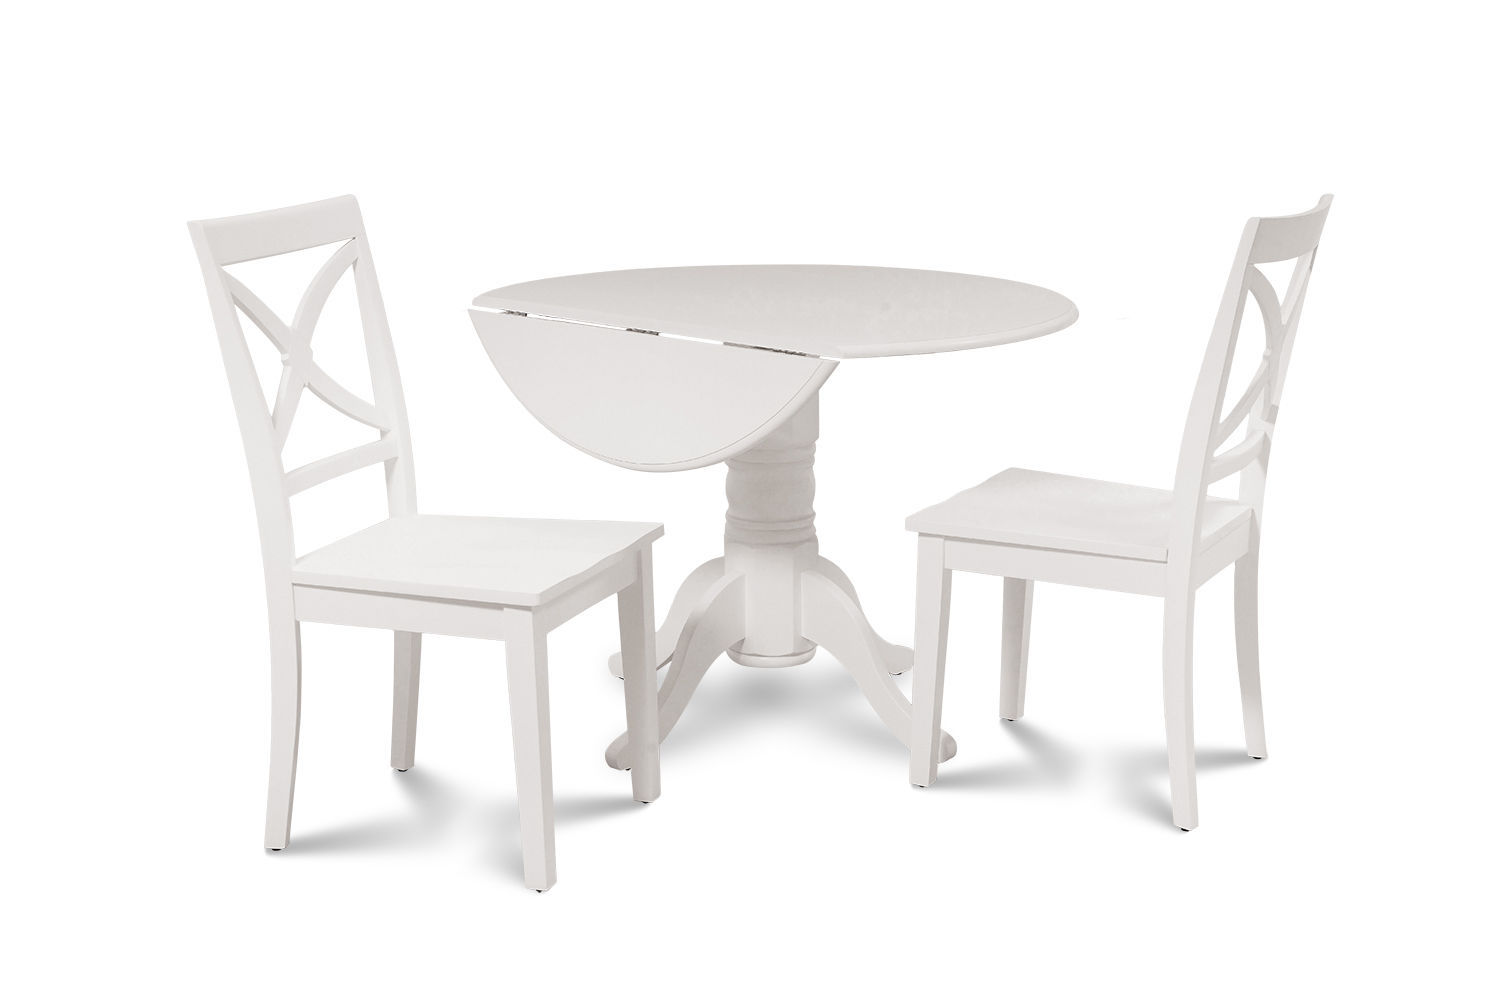 3 PIECE ROUND DINETTE KITCHEN TABLE SET WITH 2 PLAIN WOOD SEAT CHAIRS IN WHITE